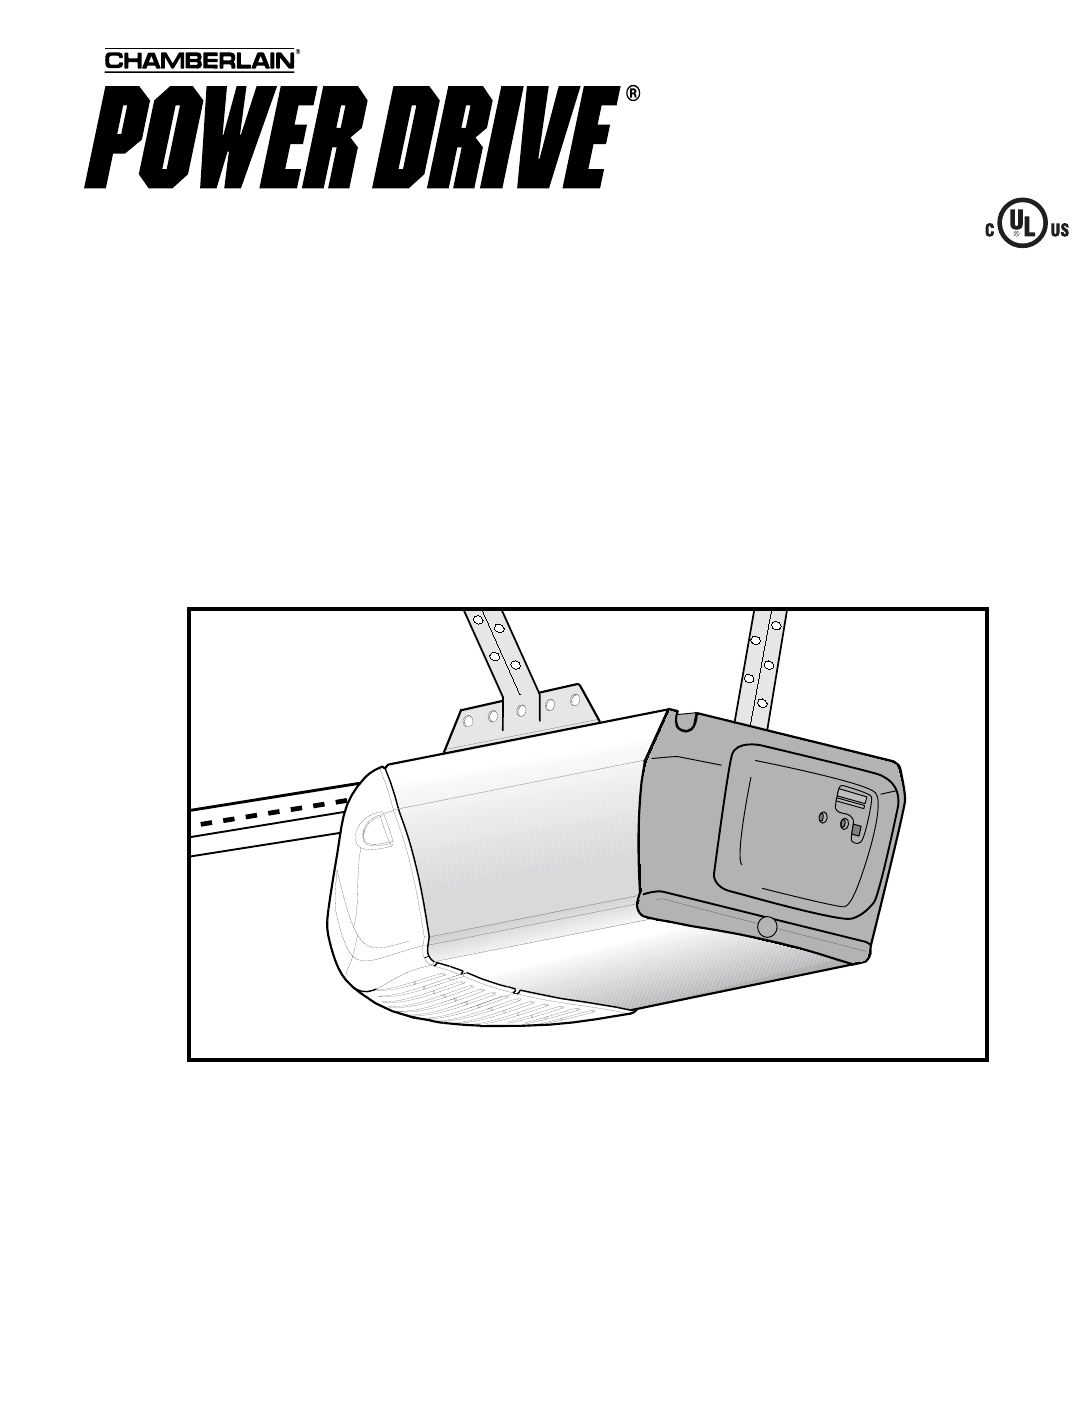 Chamberlain Garage Door Opener PD210 1 2 HP User Guide